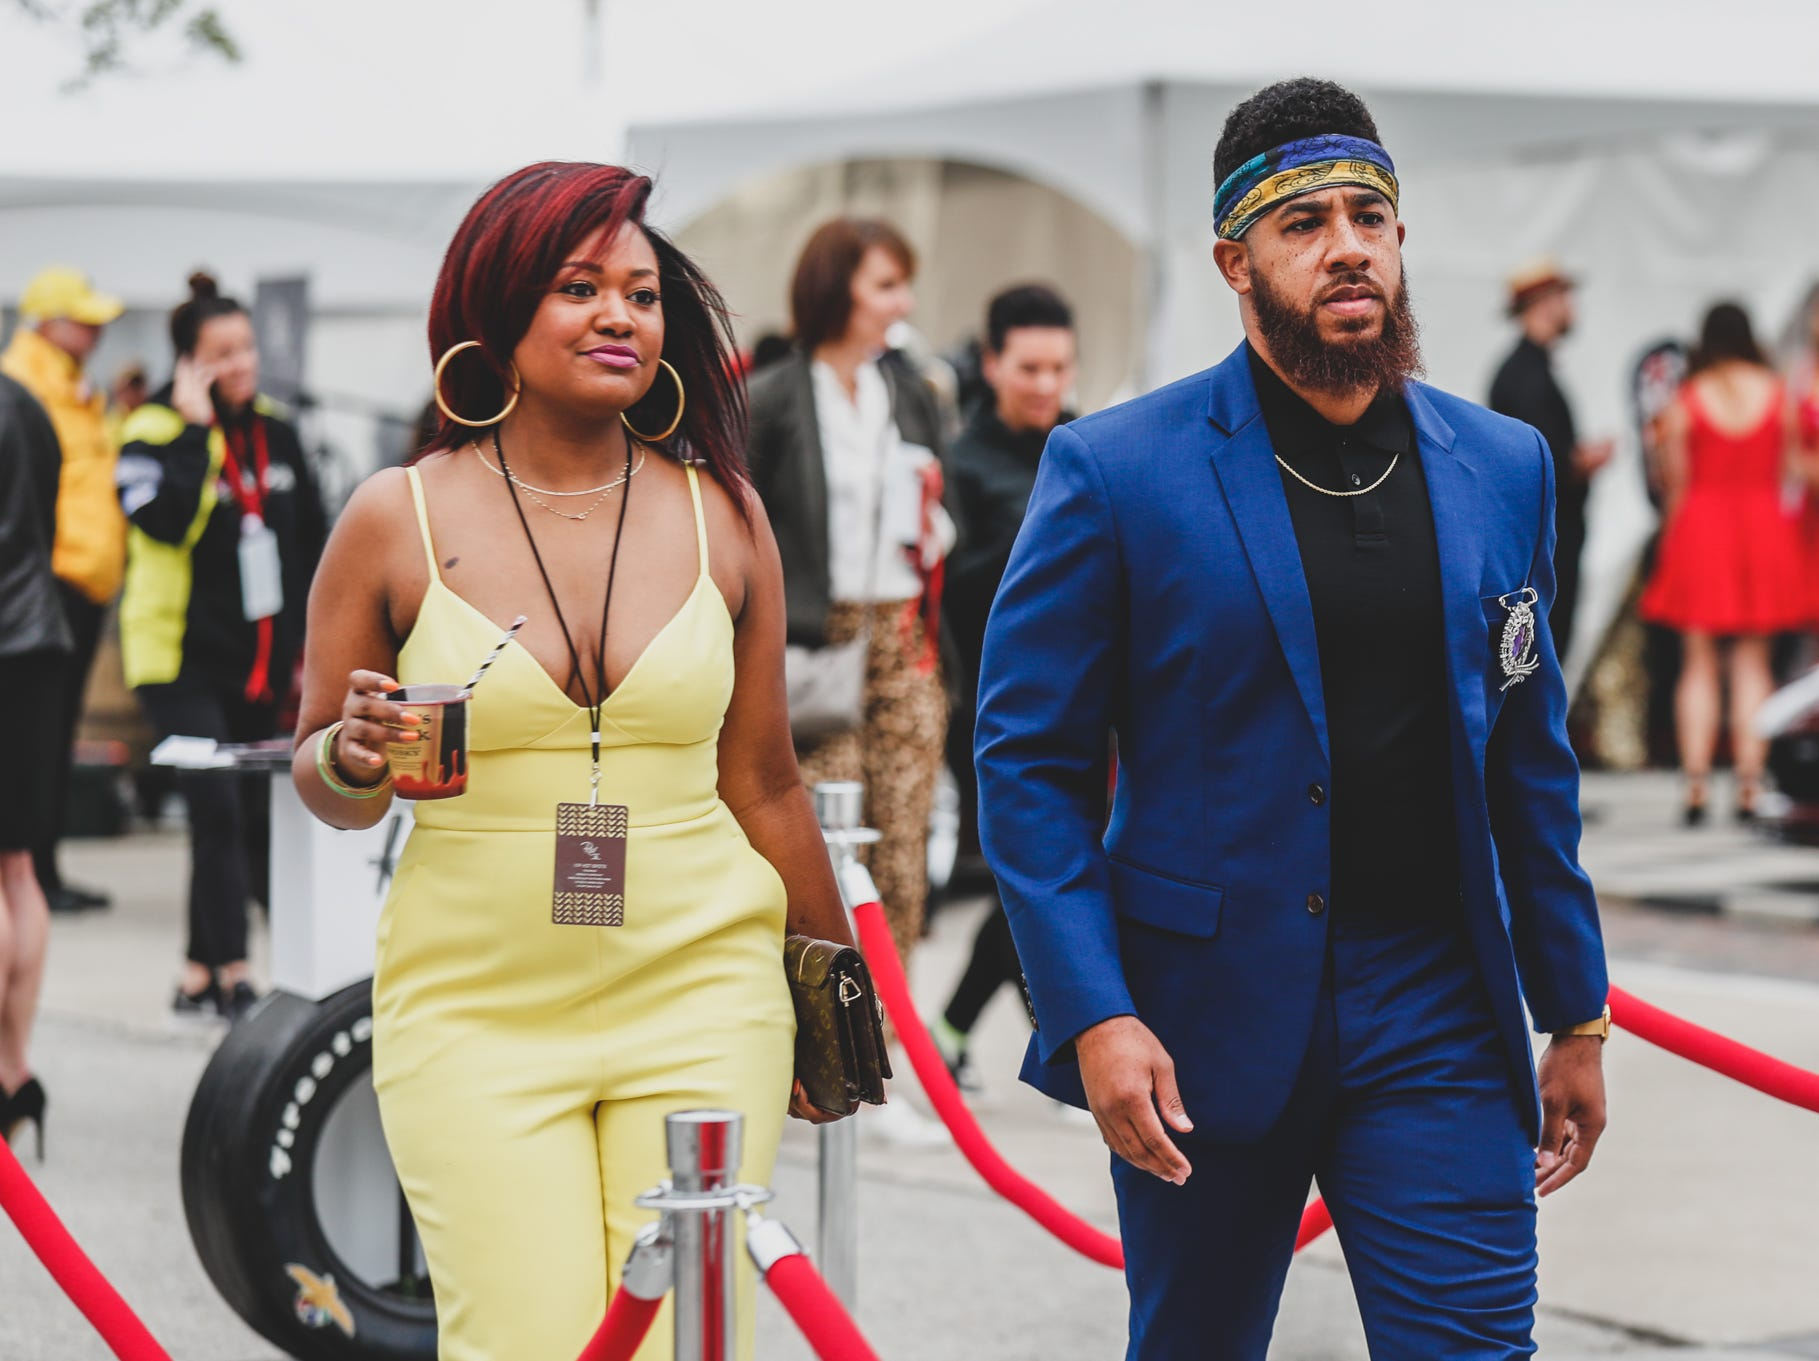 Guests strut their stuff at the Rev Indy fundraiser, held at the Indianapolis Motor Speedway on Saturday, May 4, 2019. Funds raised support the IU Health Foundation statewide and the IU Health Emergency Medical Center at IMS.